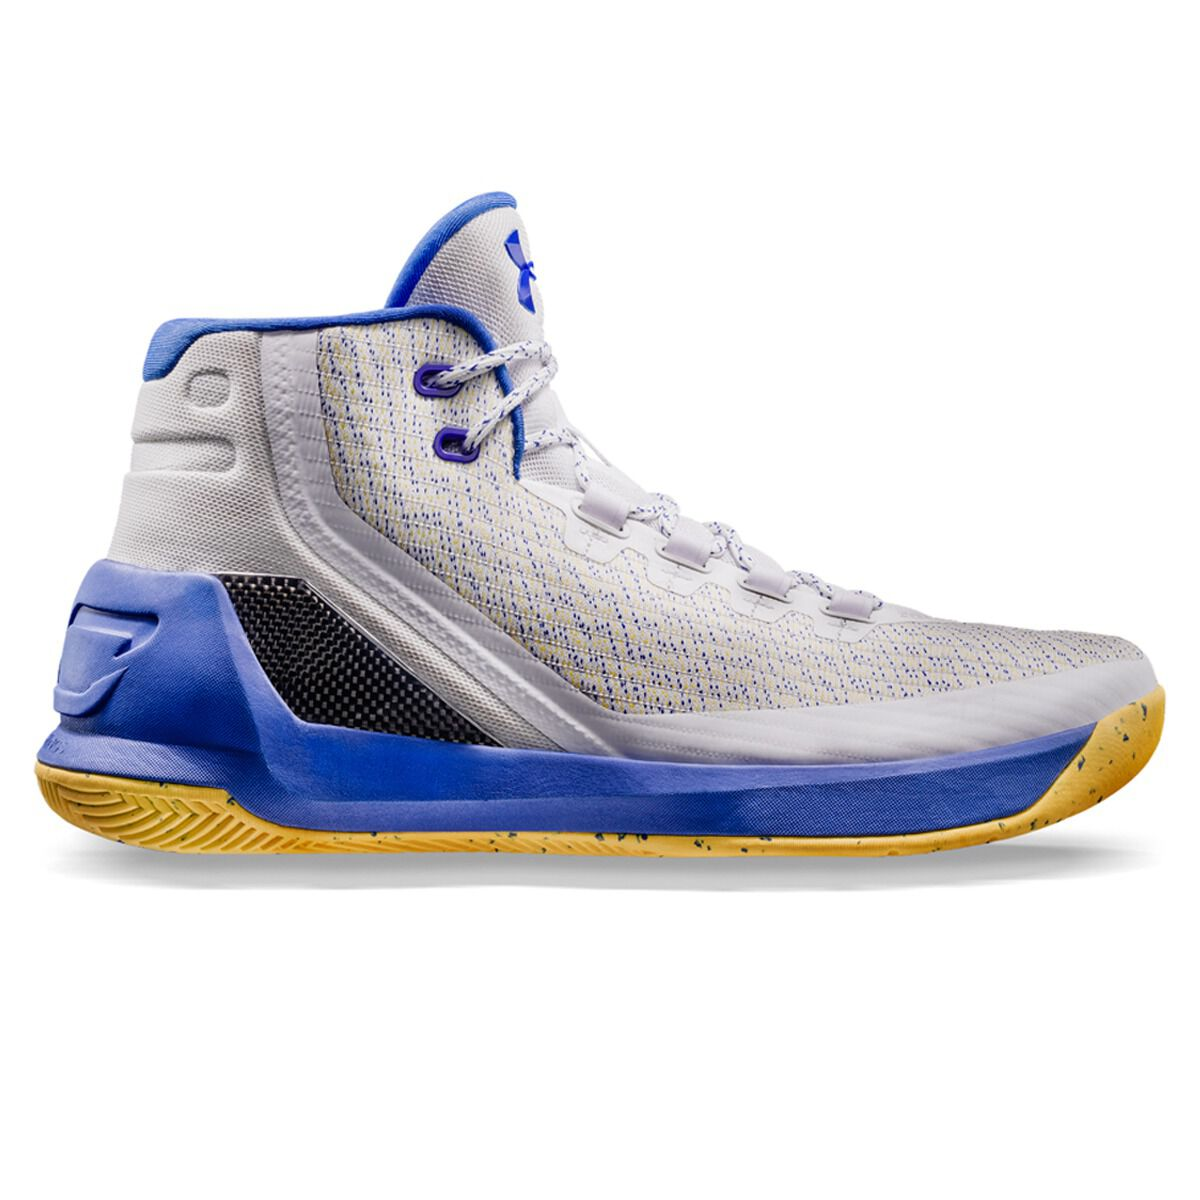 c7908a52 sale under armour curry 3 mens basketball shoes white blue us 10 white blue  20106 59cd8